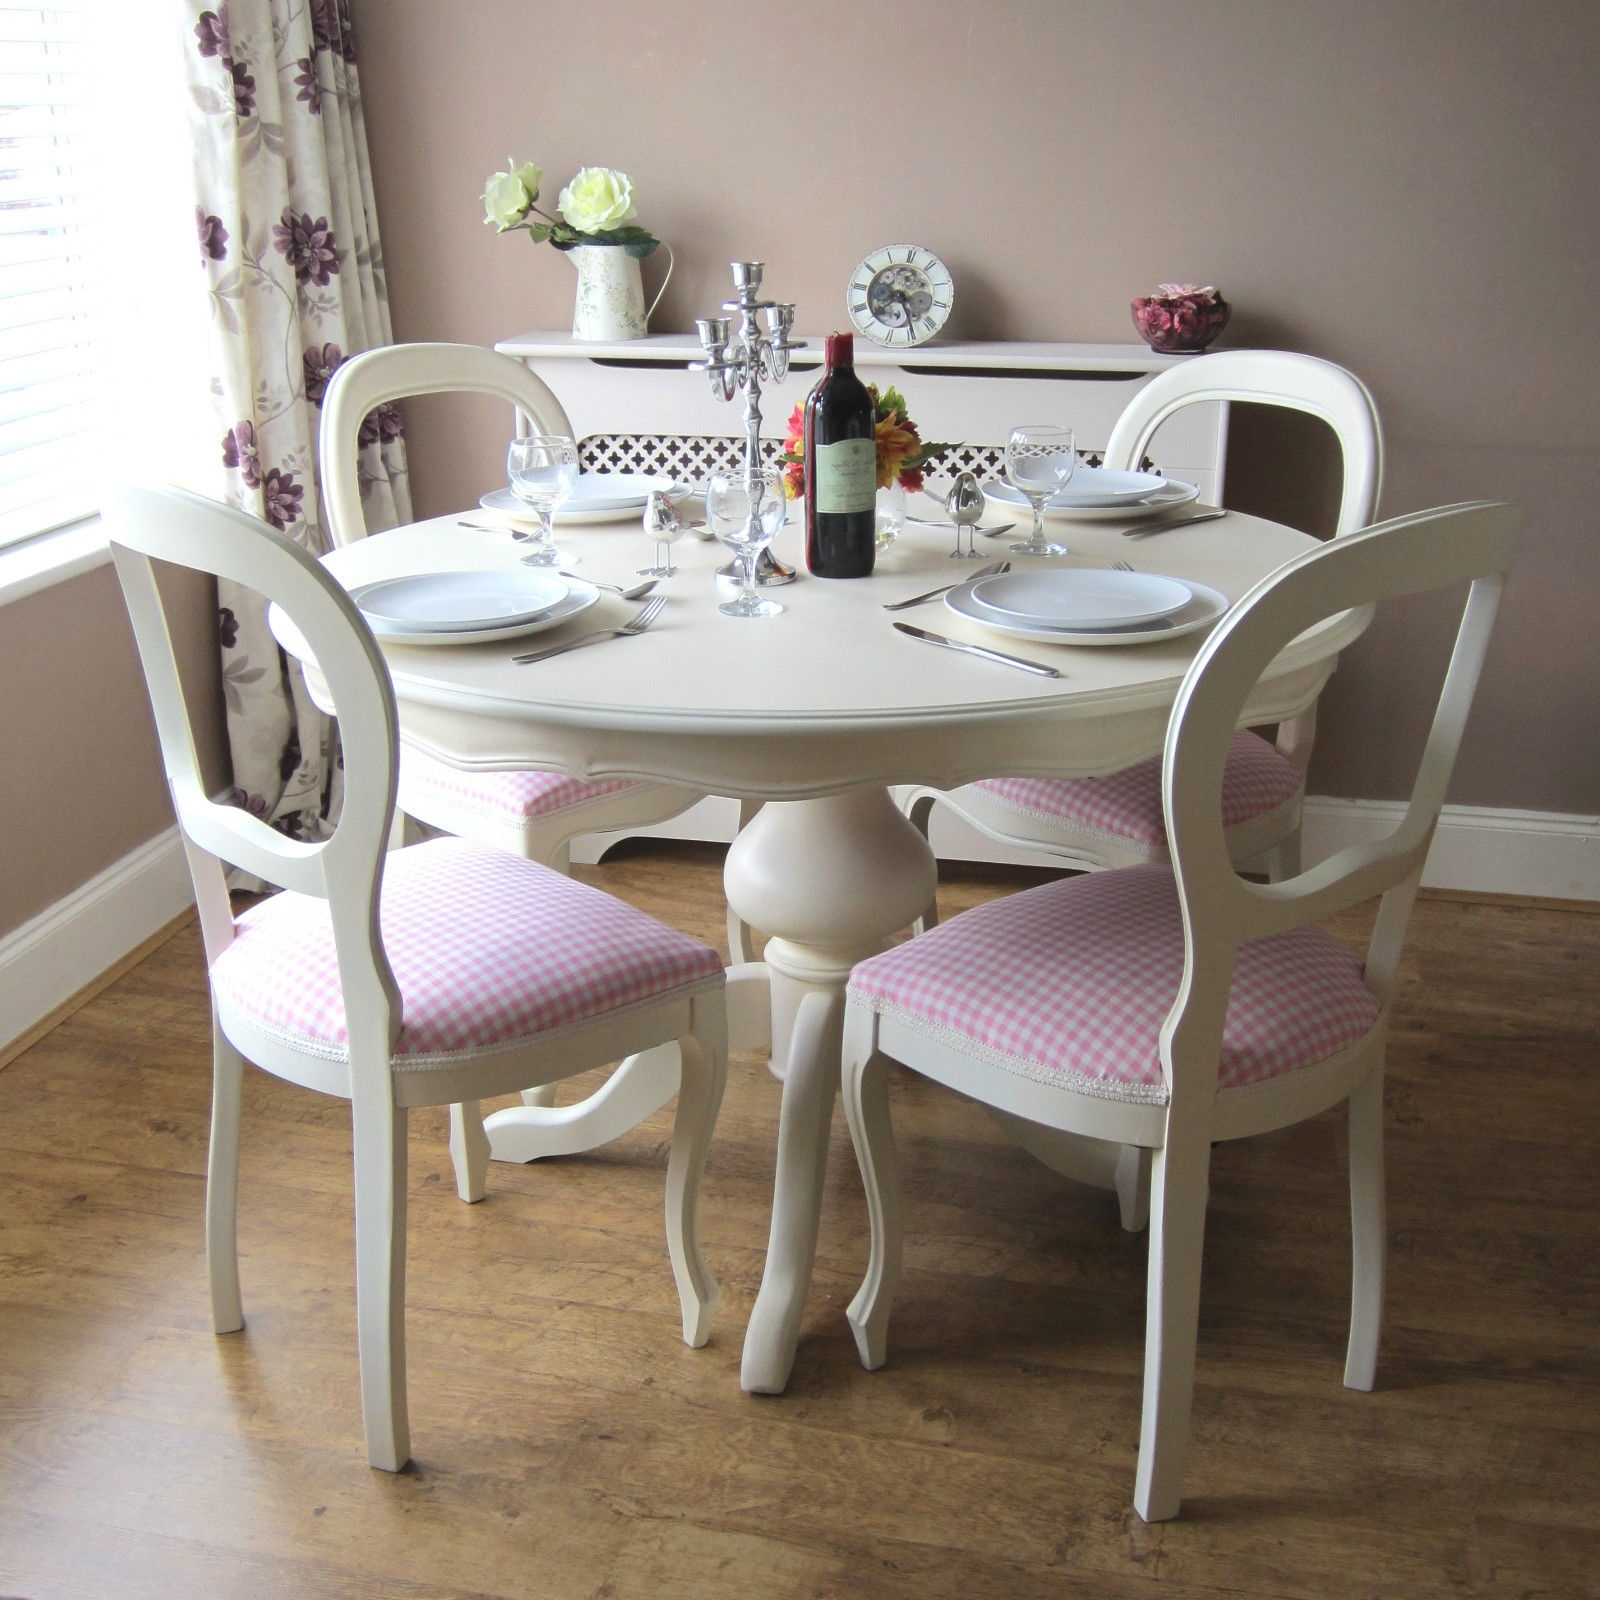 Shabby Chic Table And Chairs (View 20 of 20)